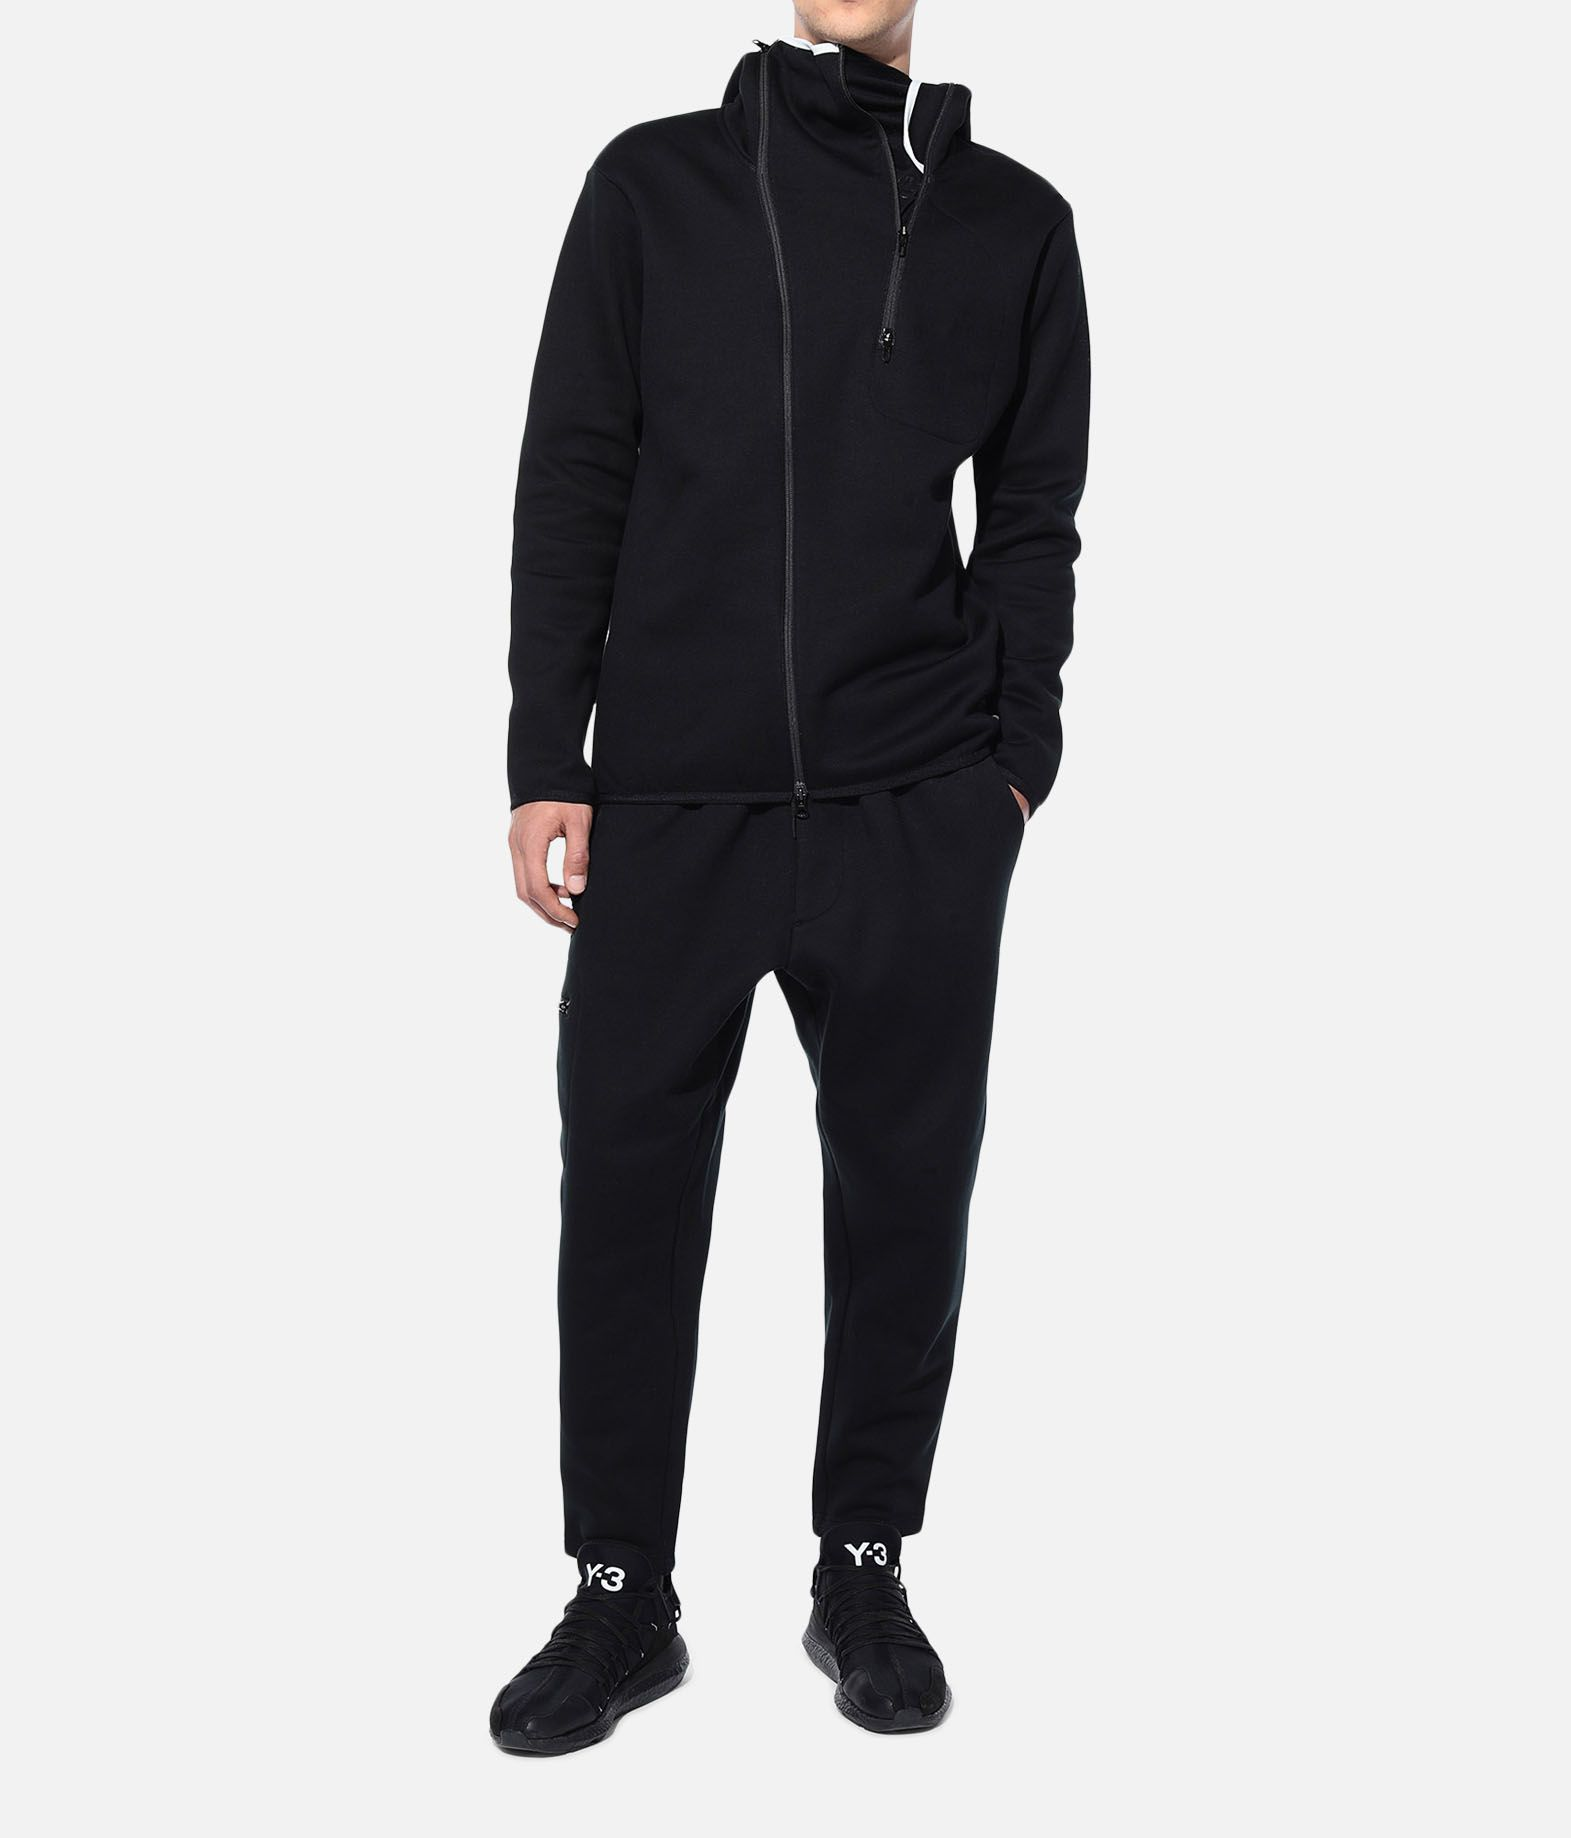 Y-3 Y-3 Binding Track Jacket Track top メンズ a